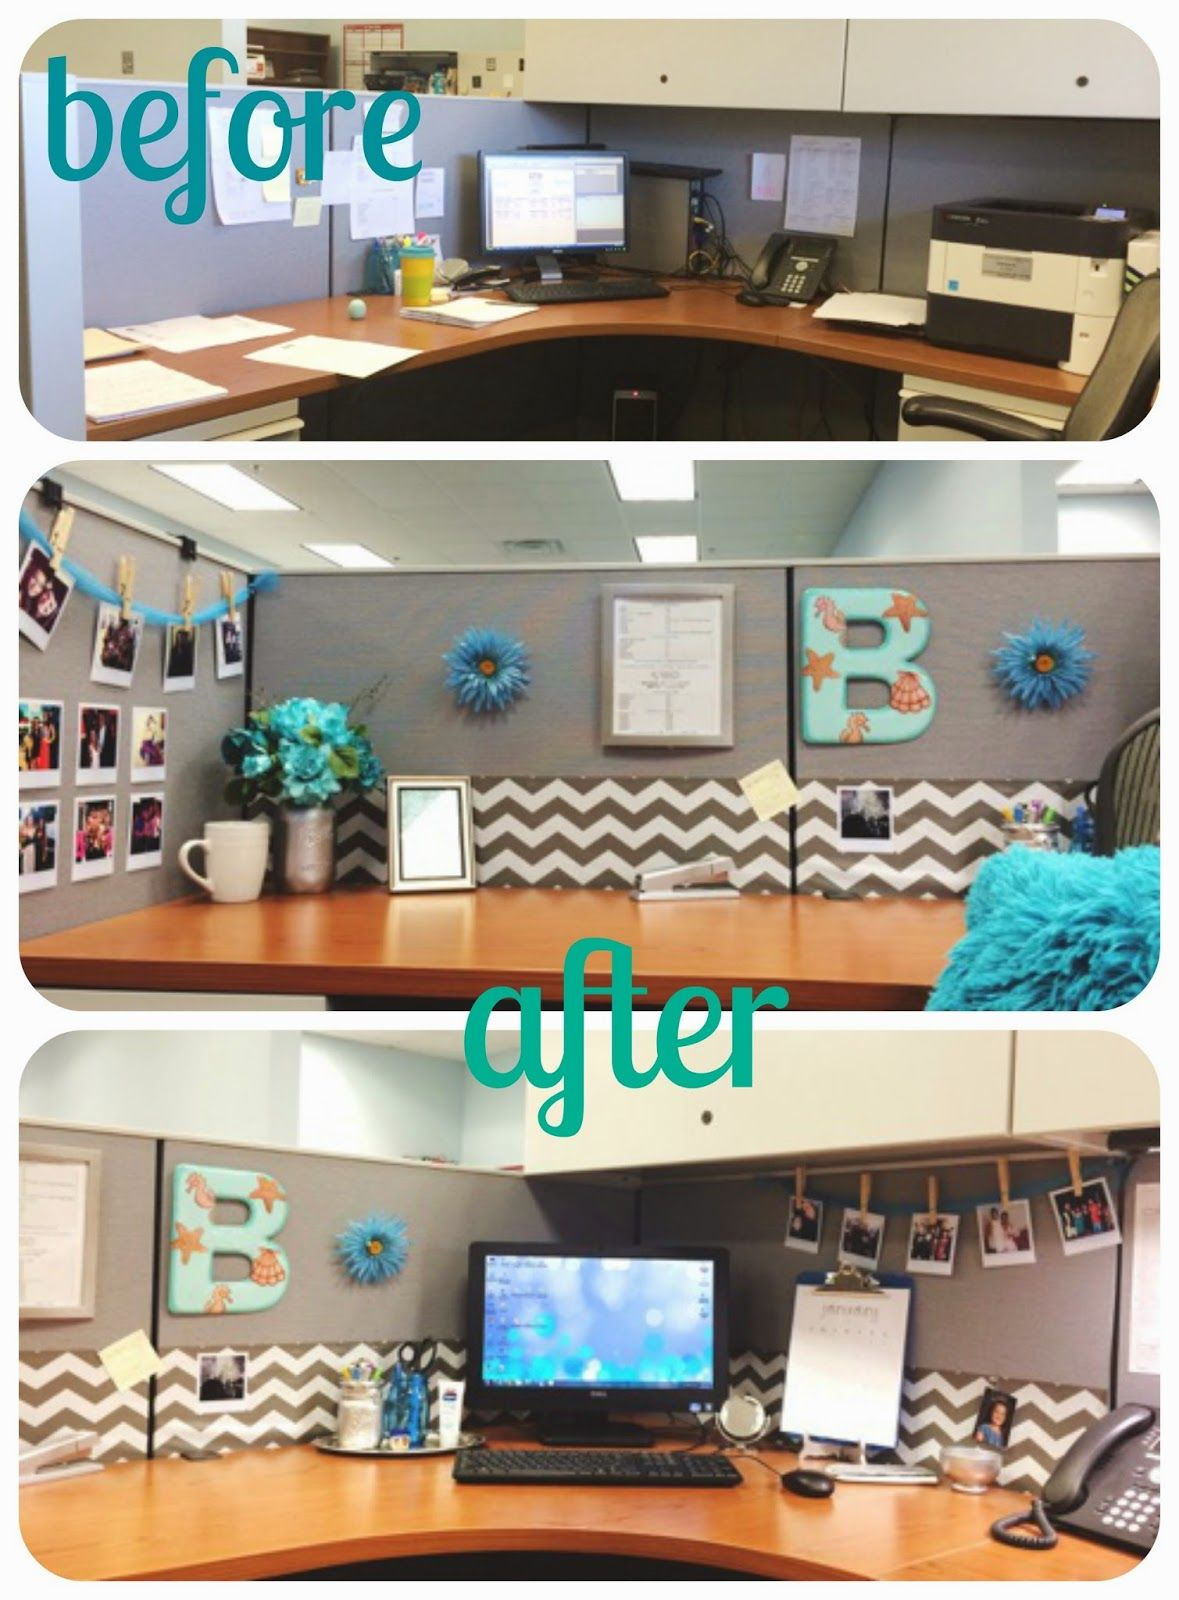 Diy desk glam give your cubicle office or work space a makeover for under 50 step by step - Small work space decor ...